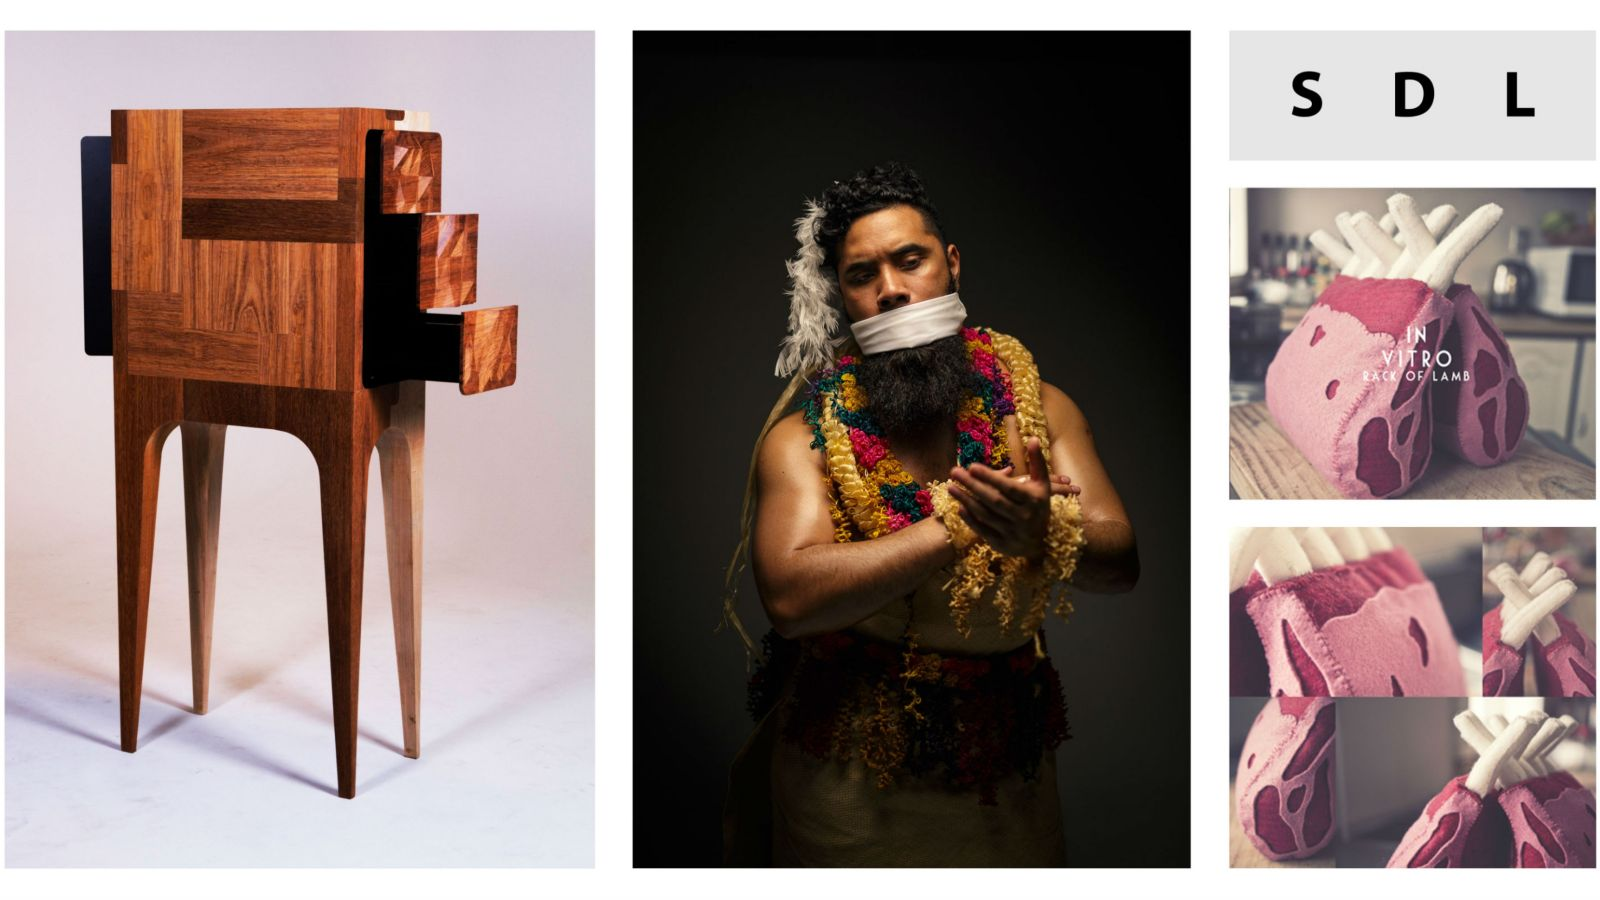 Montage of wooden furniture, man with material covering his mouth, and images of fake meat made from felt